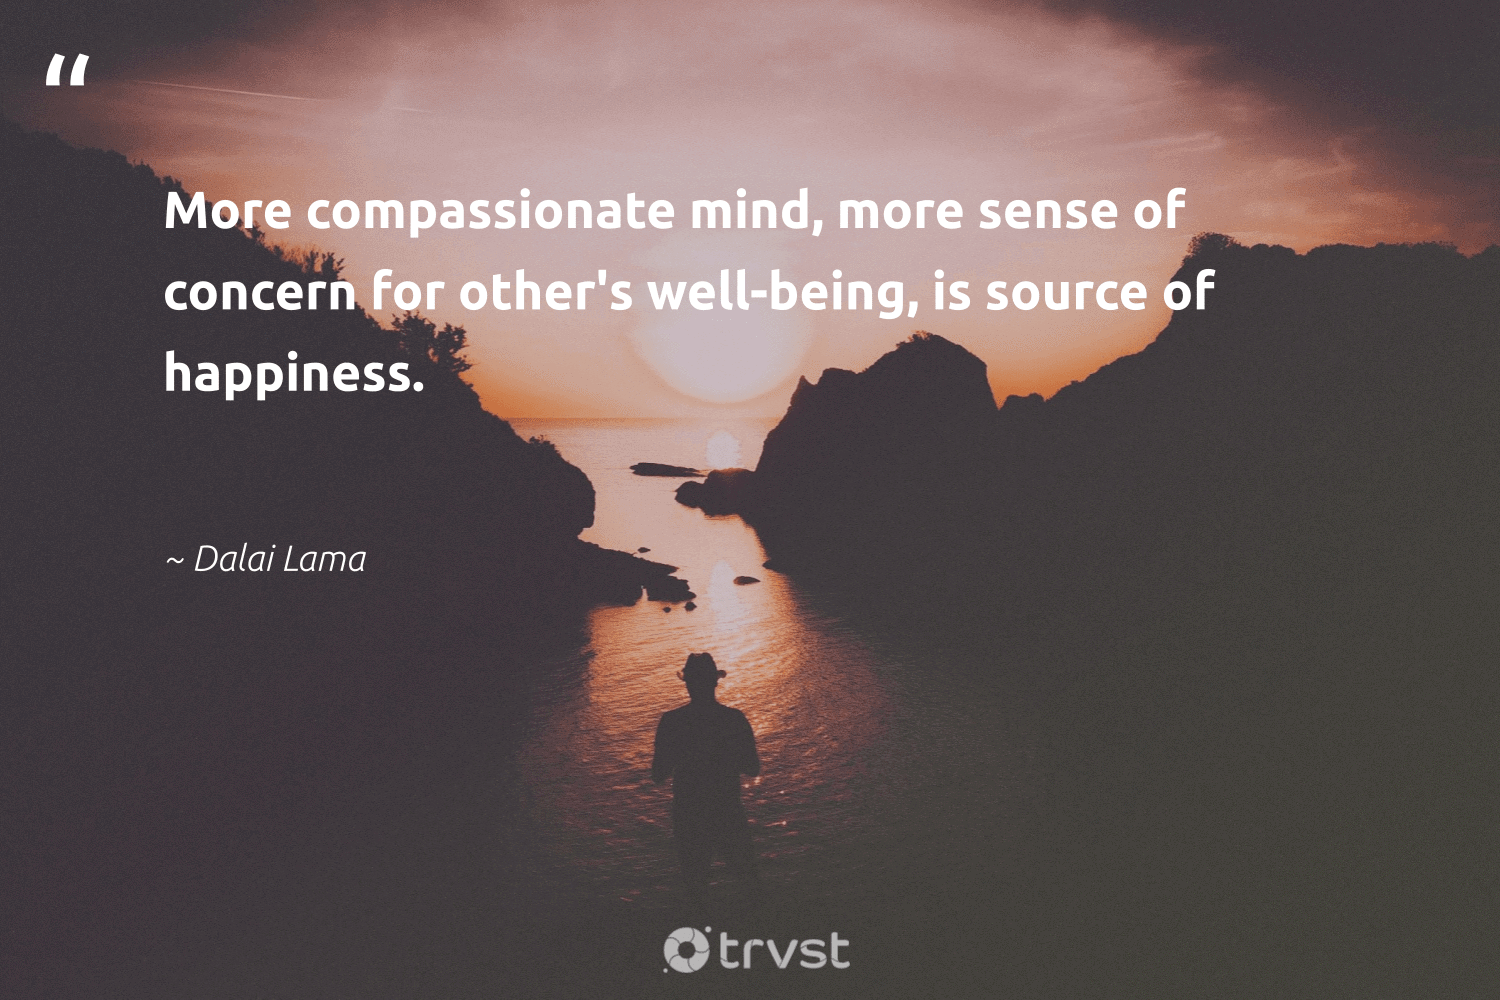 """More compassionate mind, more sense of concern for other's well-being, is source of happiness.""  - Dalai Lama #trvst #quotes #wellbeing #happiness #wellbeing #healthy #mindset #changemakers #dosomething #healthyliving #togetherwecan #nevergiveup"